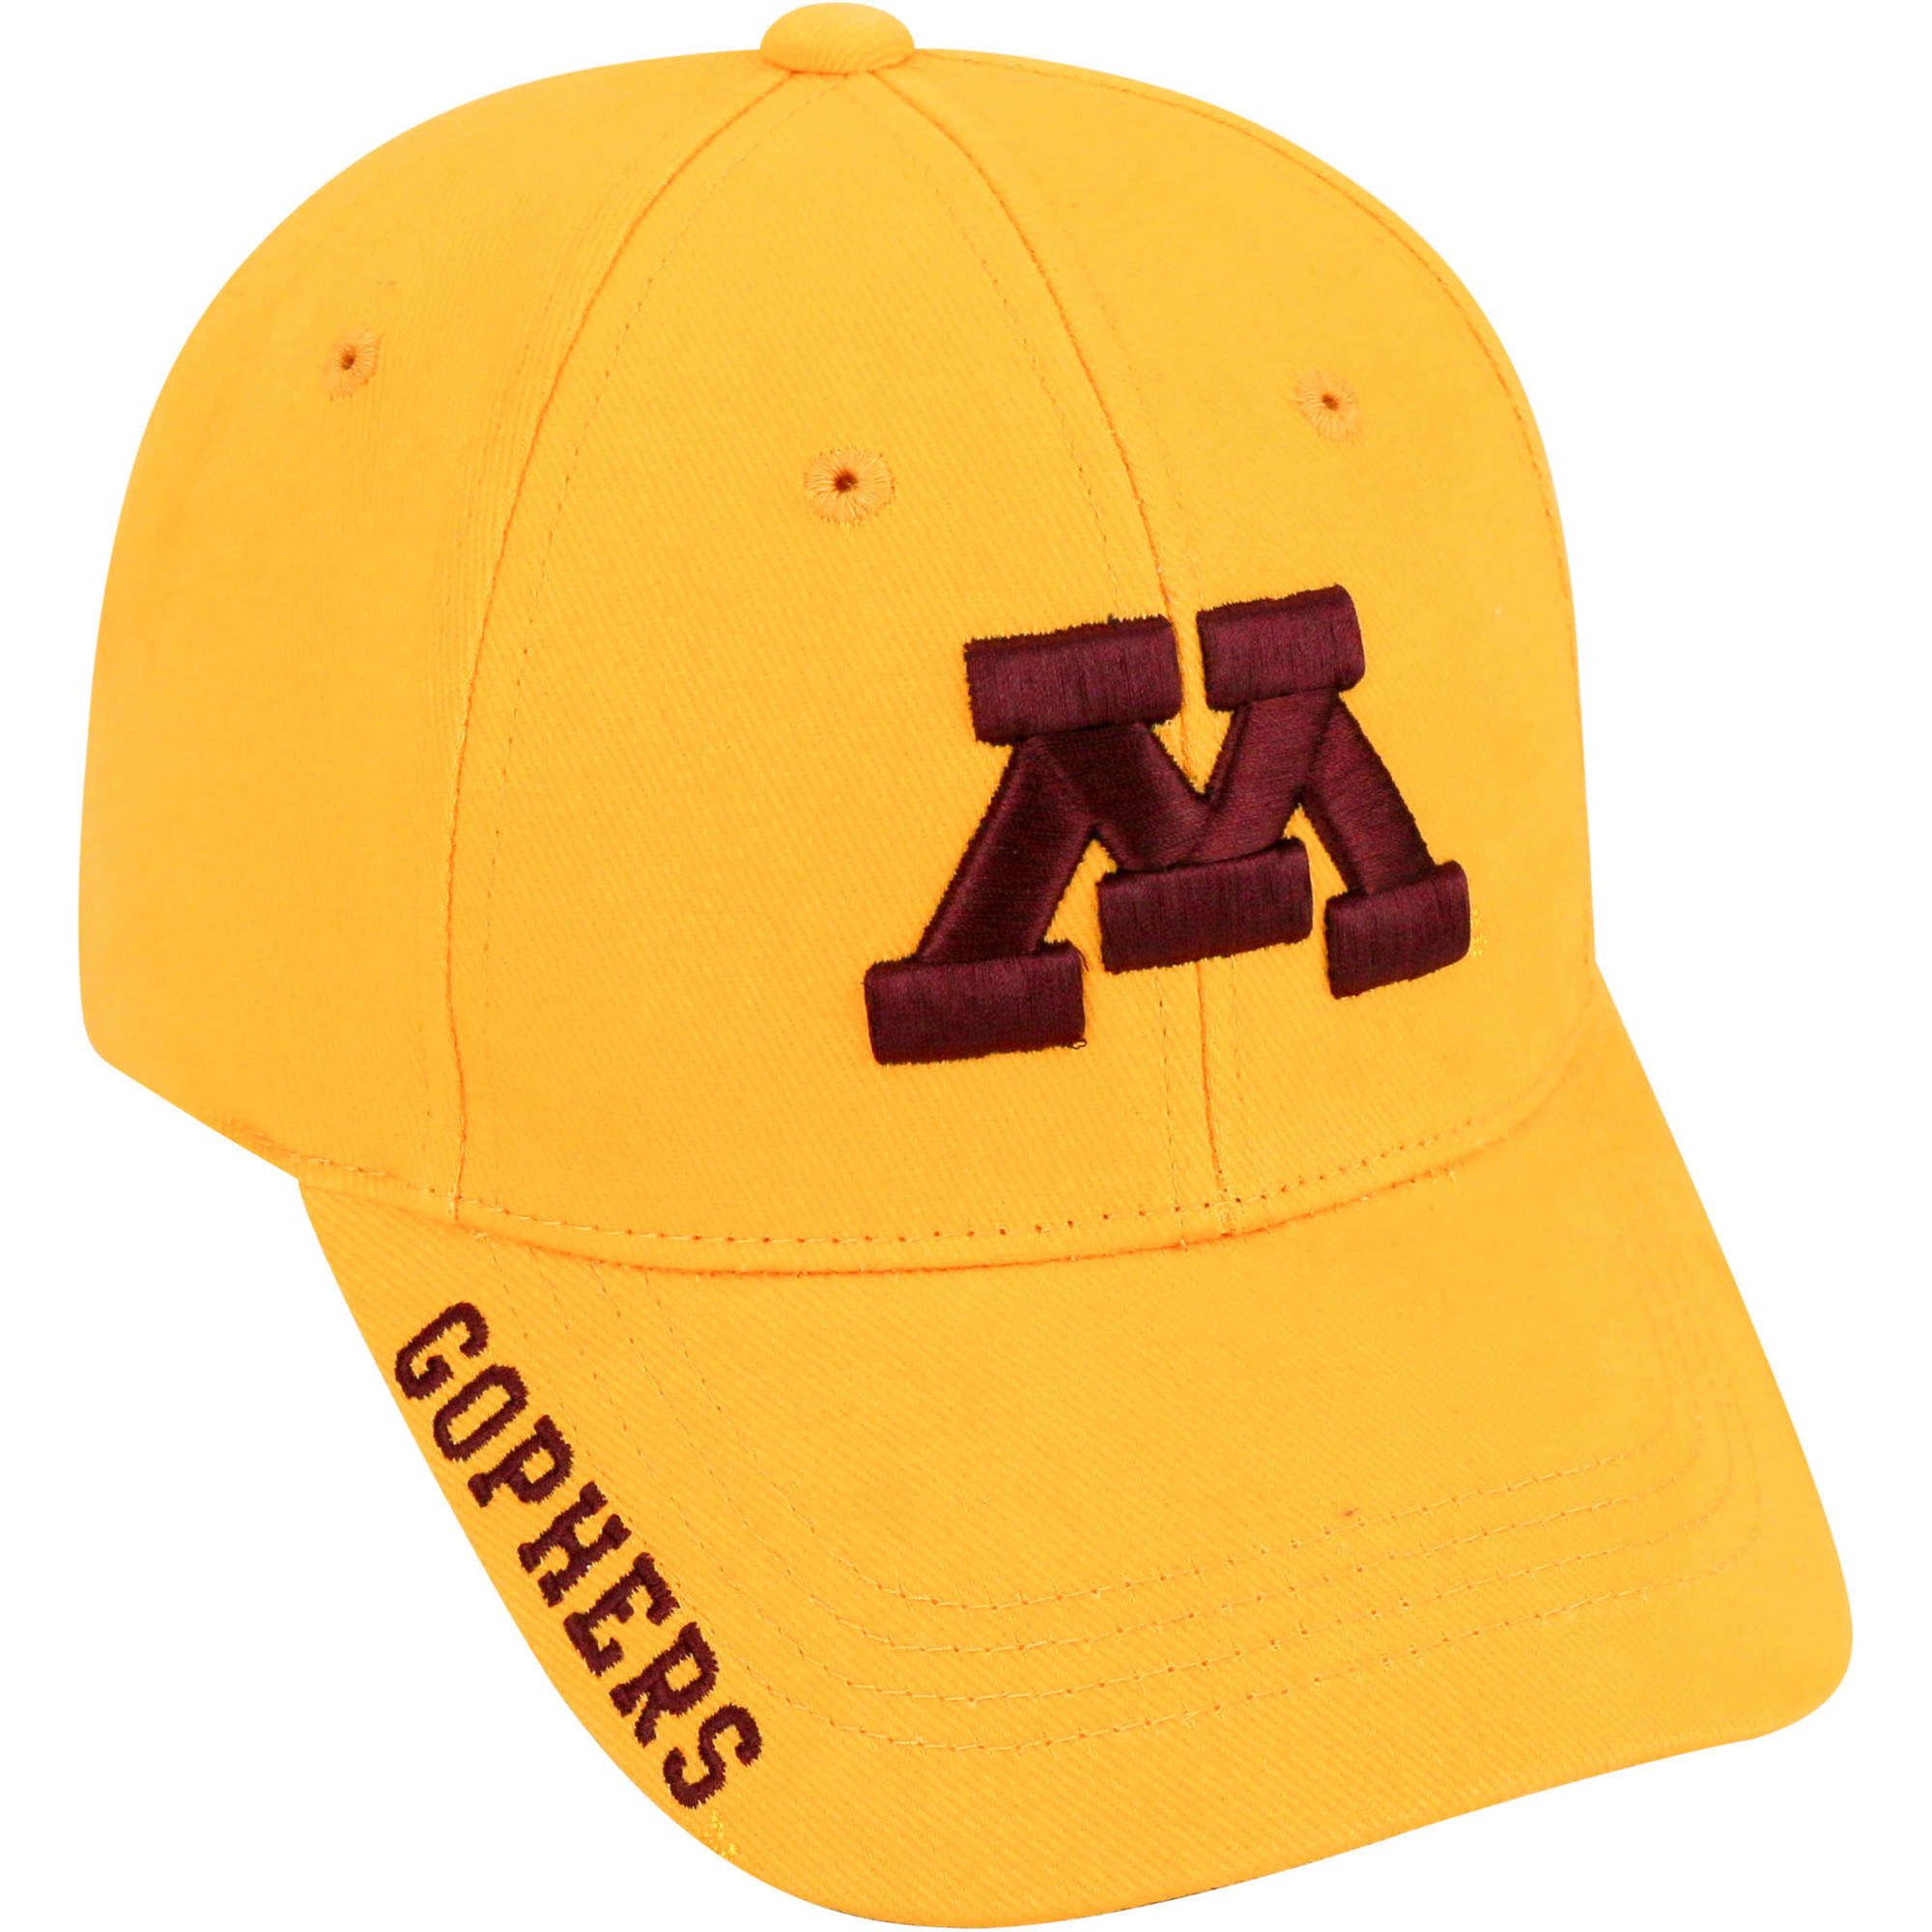 University Of Minnesota Golden Gophers Away Baseball Cap